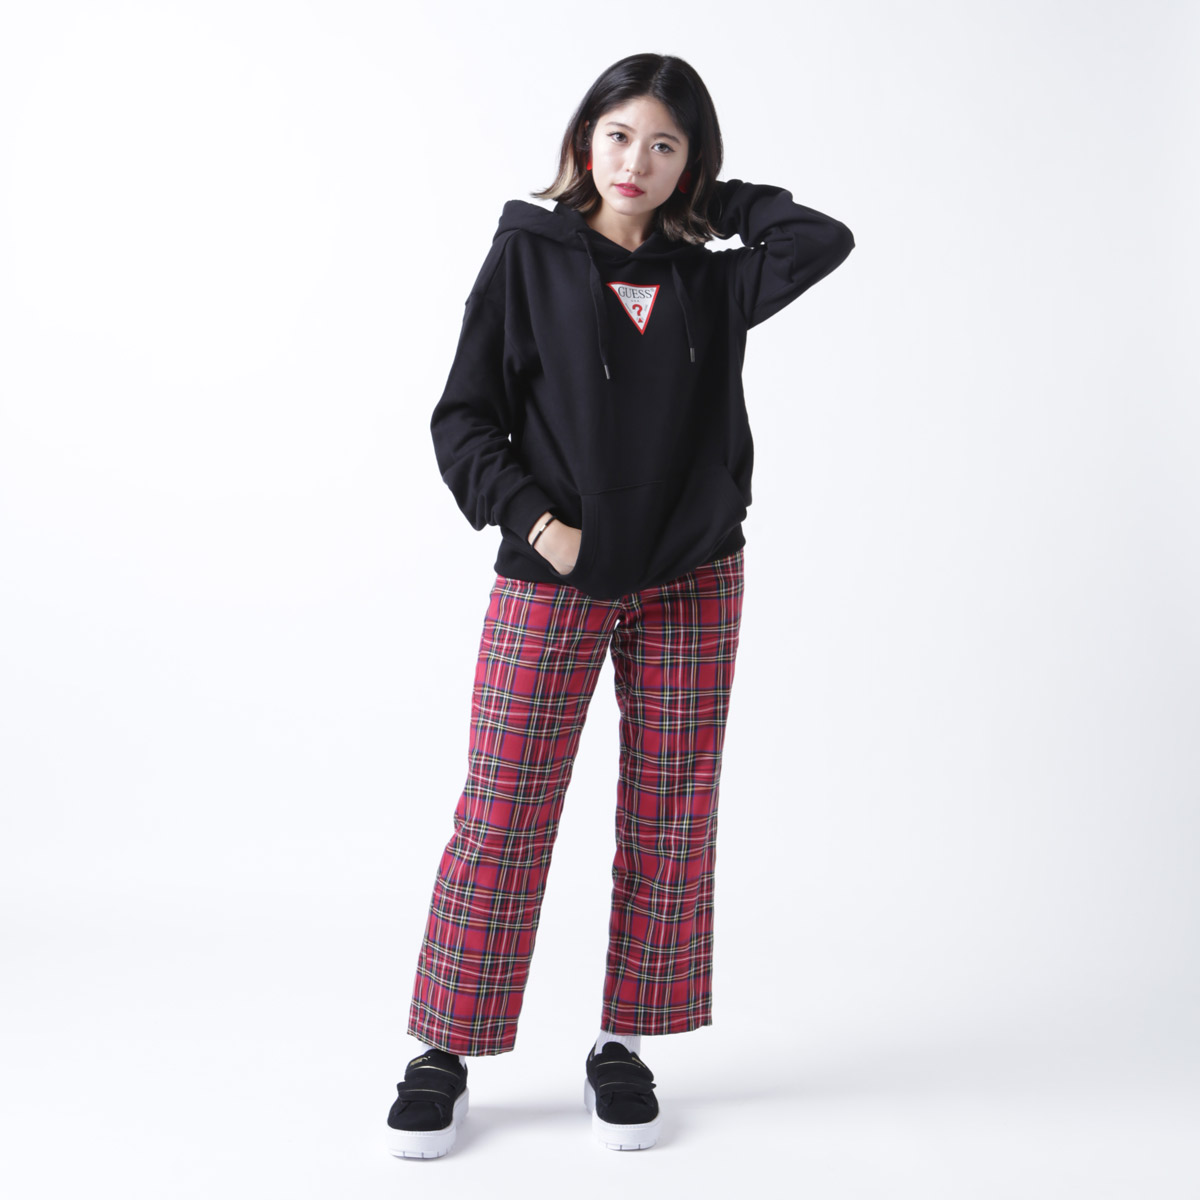 atmos pink プリントセットアップパンツ(アトモスピンク プリントセットアップパンツ)RED【レディース パンツ】18FW-I